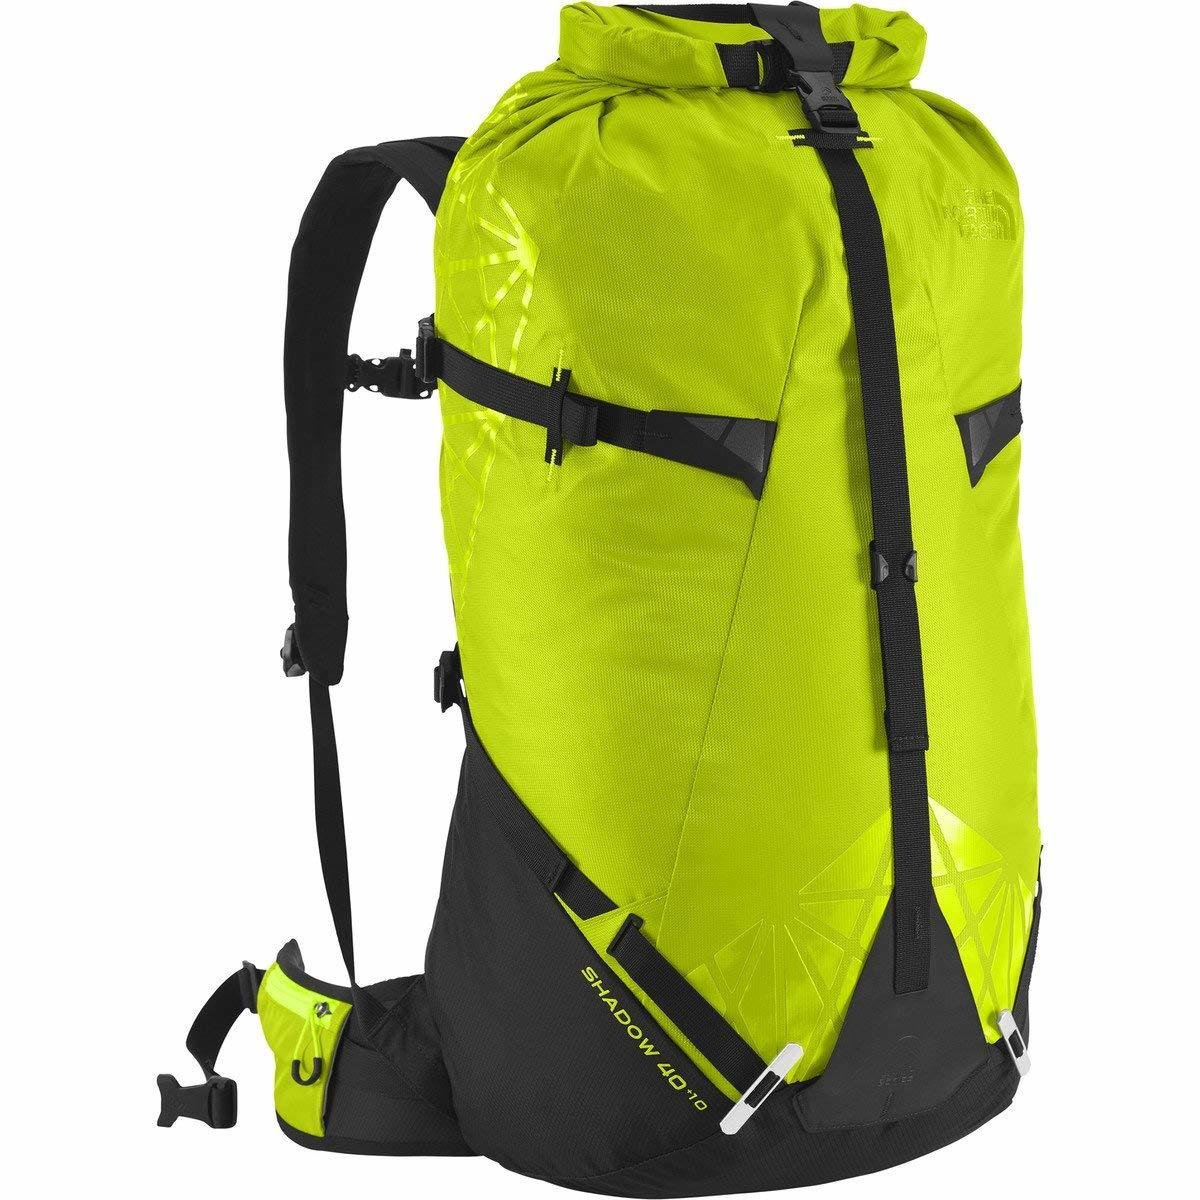 The North Face Shadow 40+10L Alpine Waterproof Backpack Small/Medium Torso